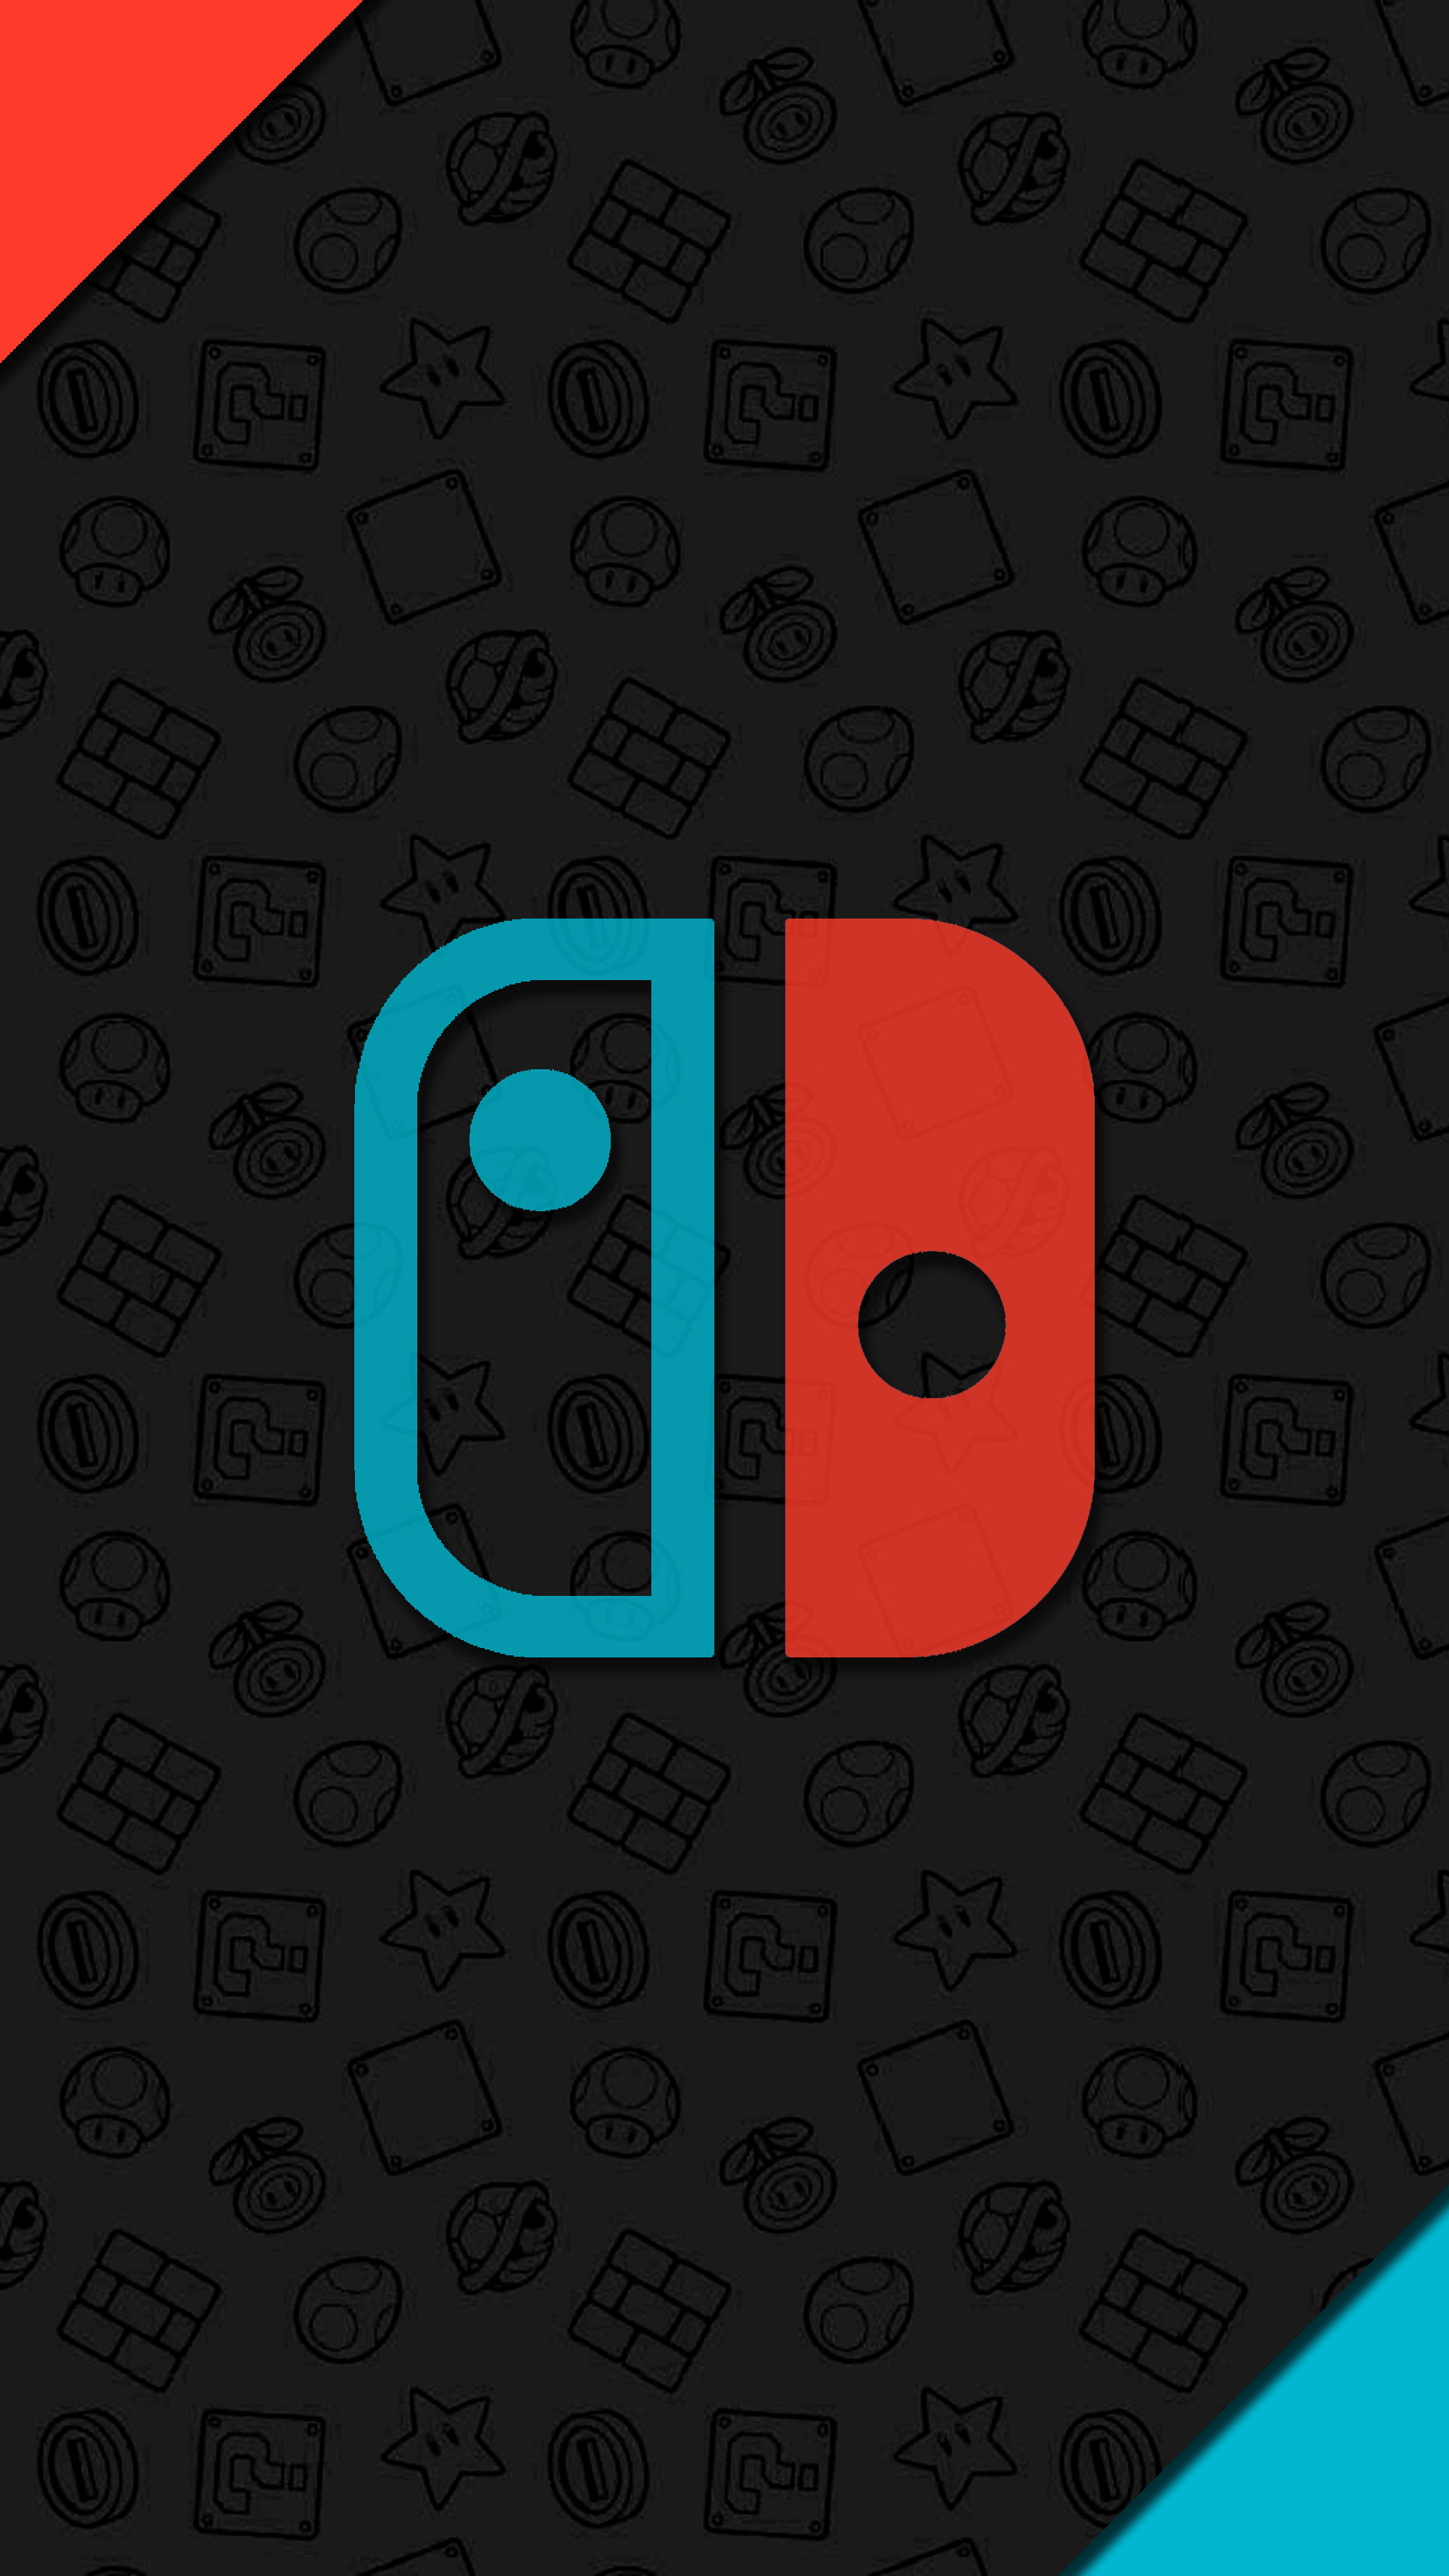 Nintendo Switch Wallpaper for your phone High rez